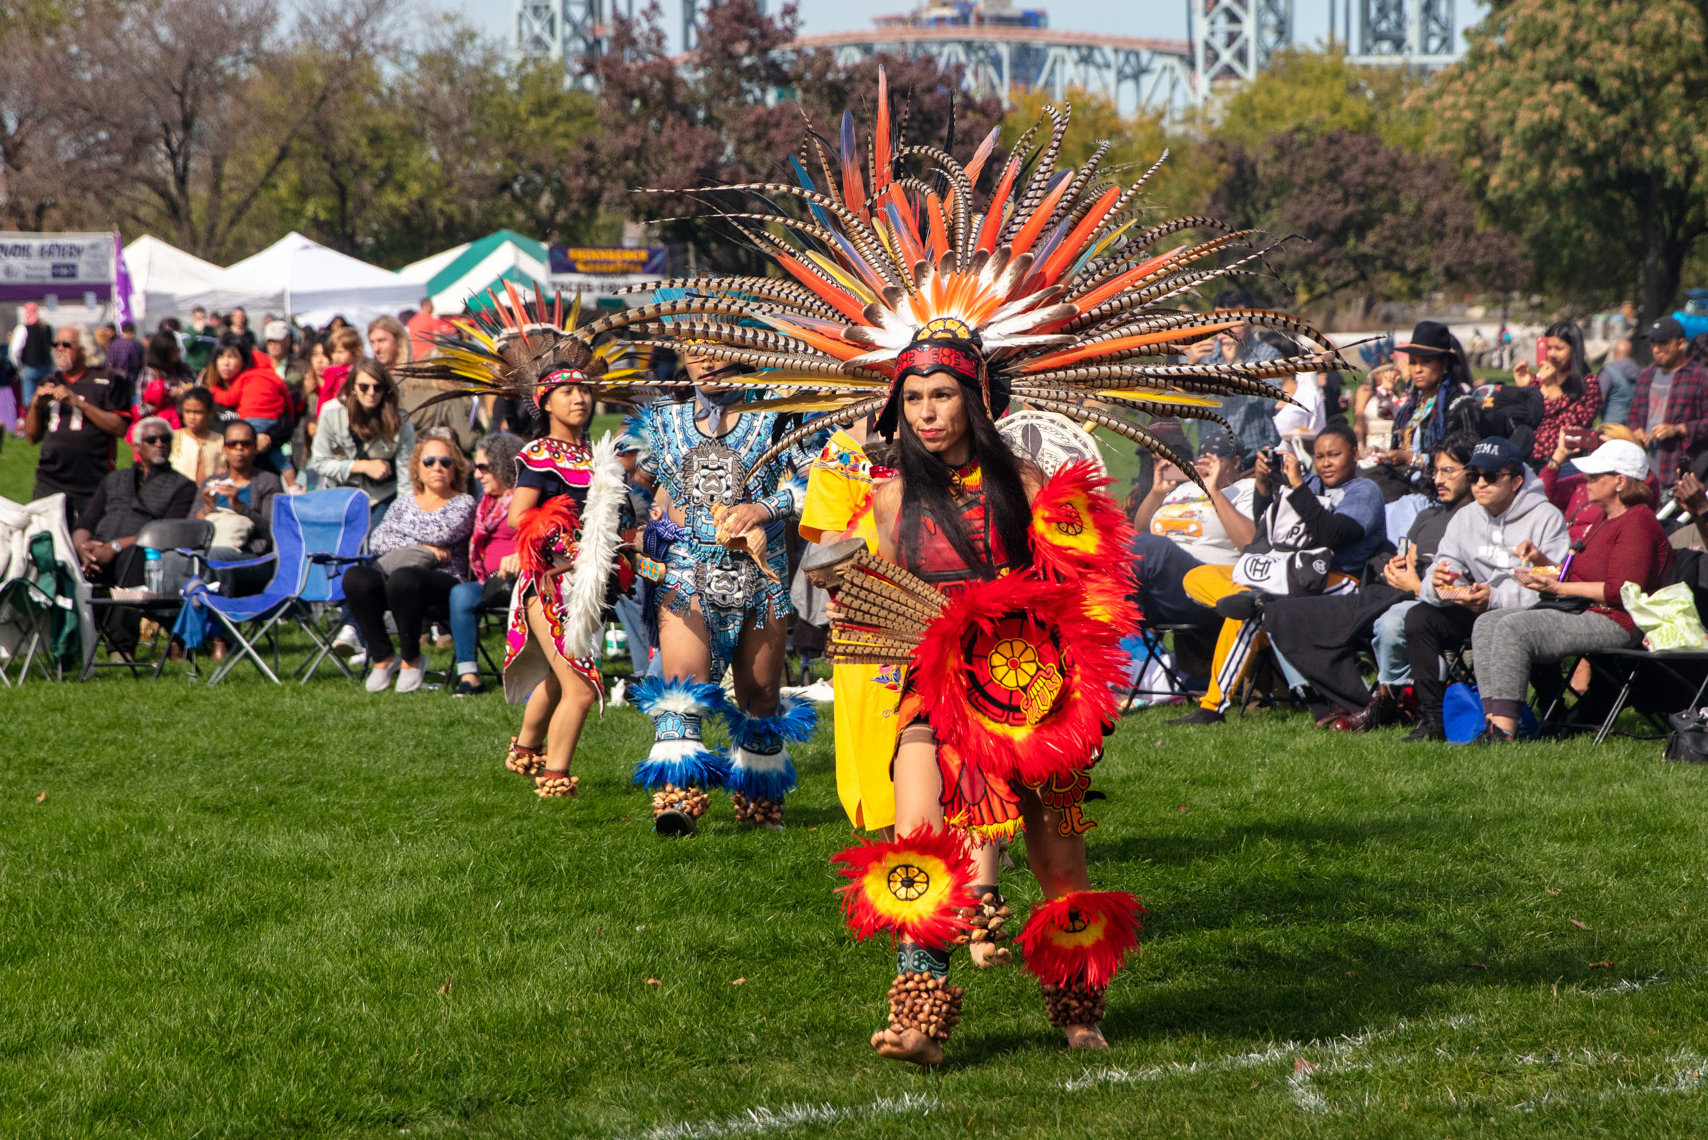 A 2019 Celebration in New York for Indigenous Persons Day